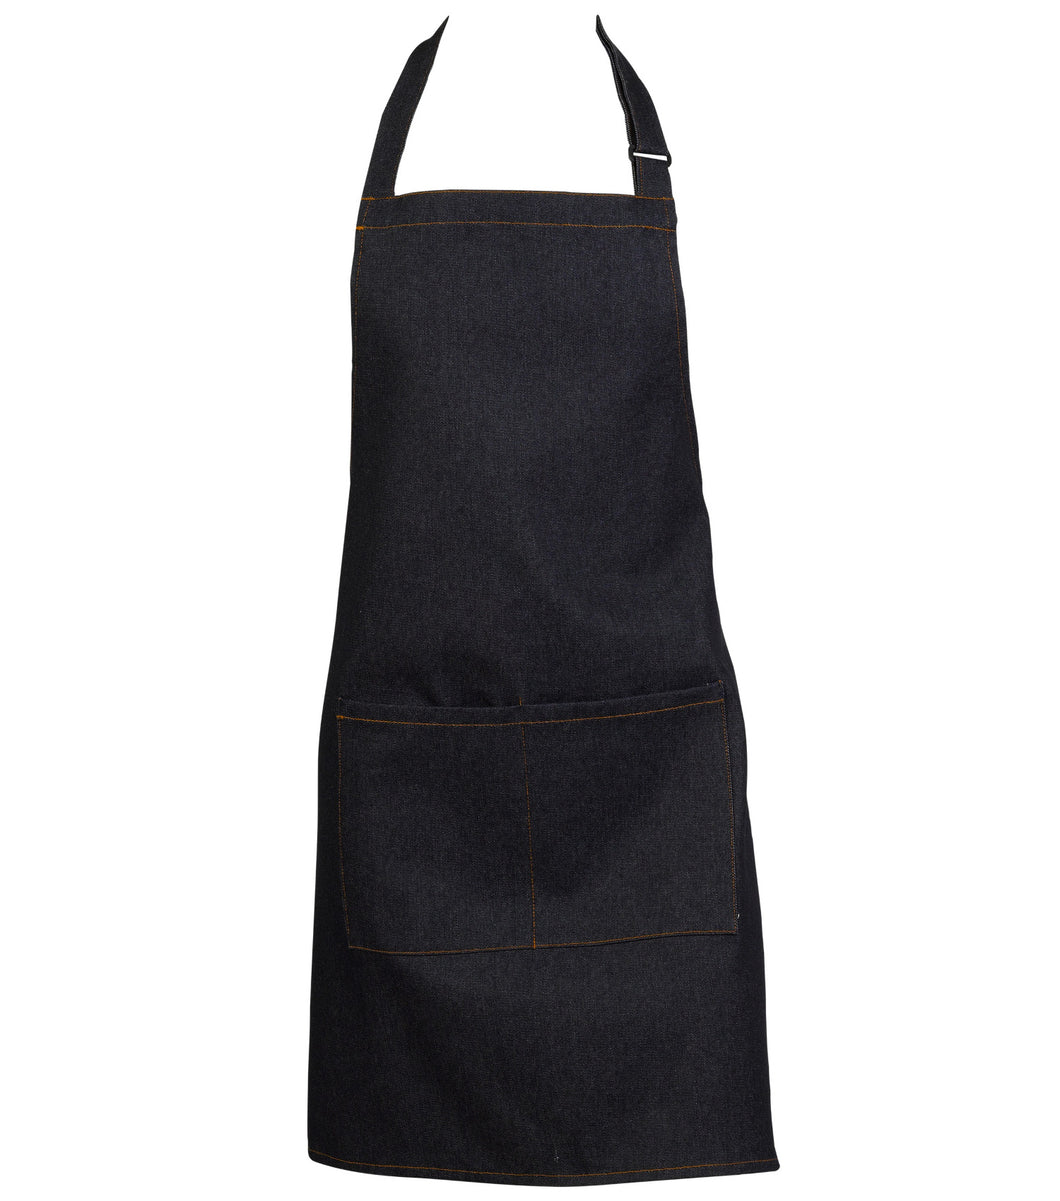 Apron  Cotton